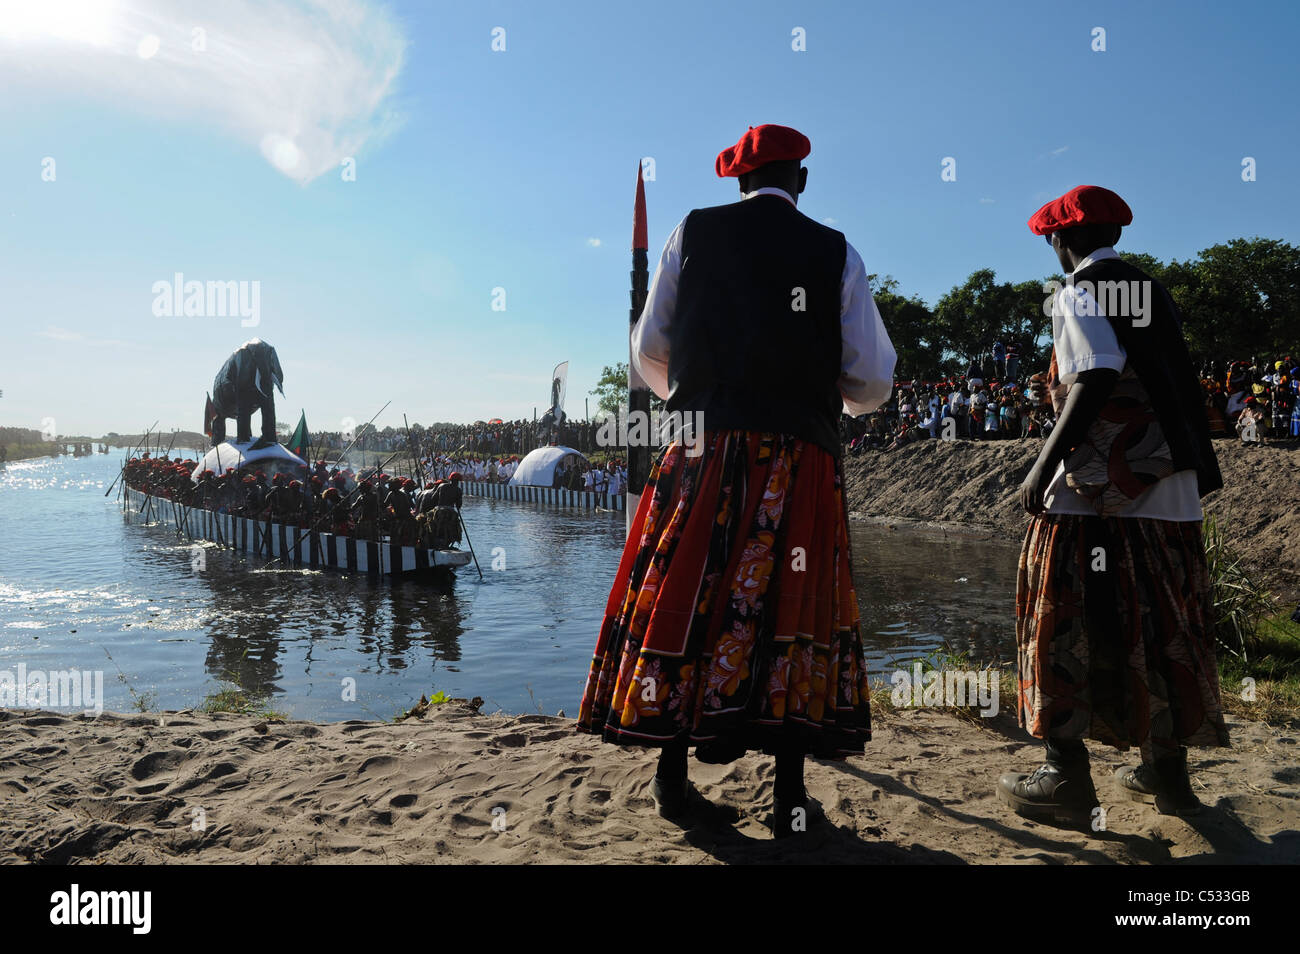 ZAMBIA Barotseland , Kuomboka ceremony, the Lozi king change his residence from Lealui to his palace in Limulunga - Stock Image